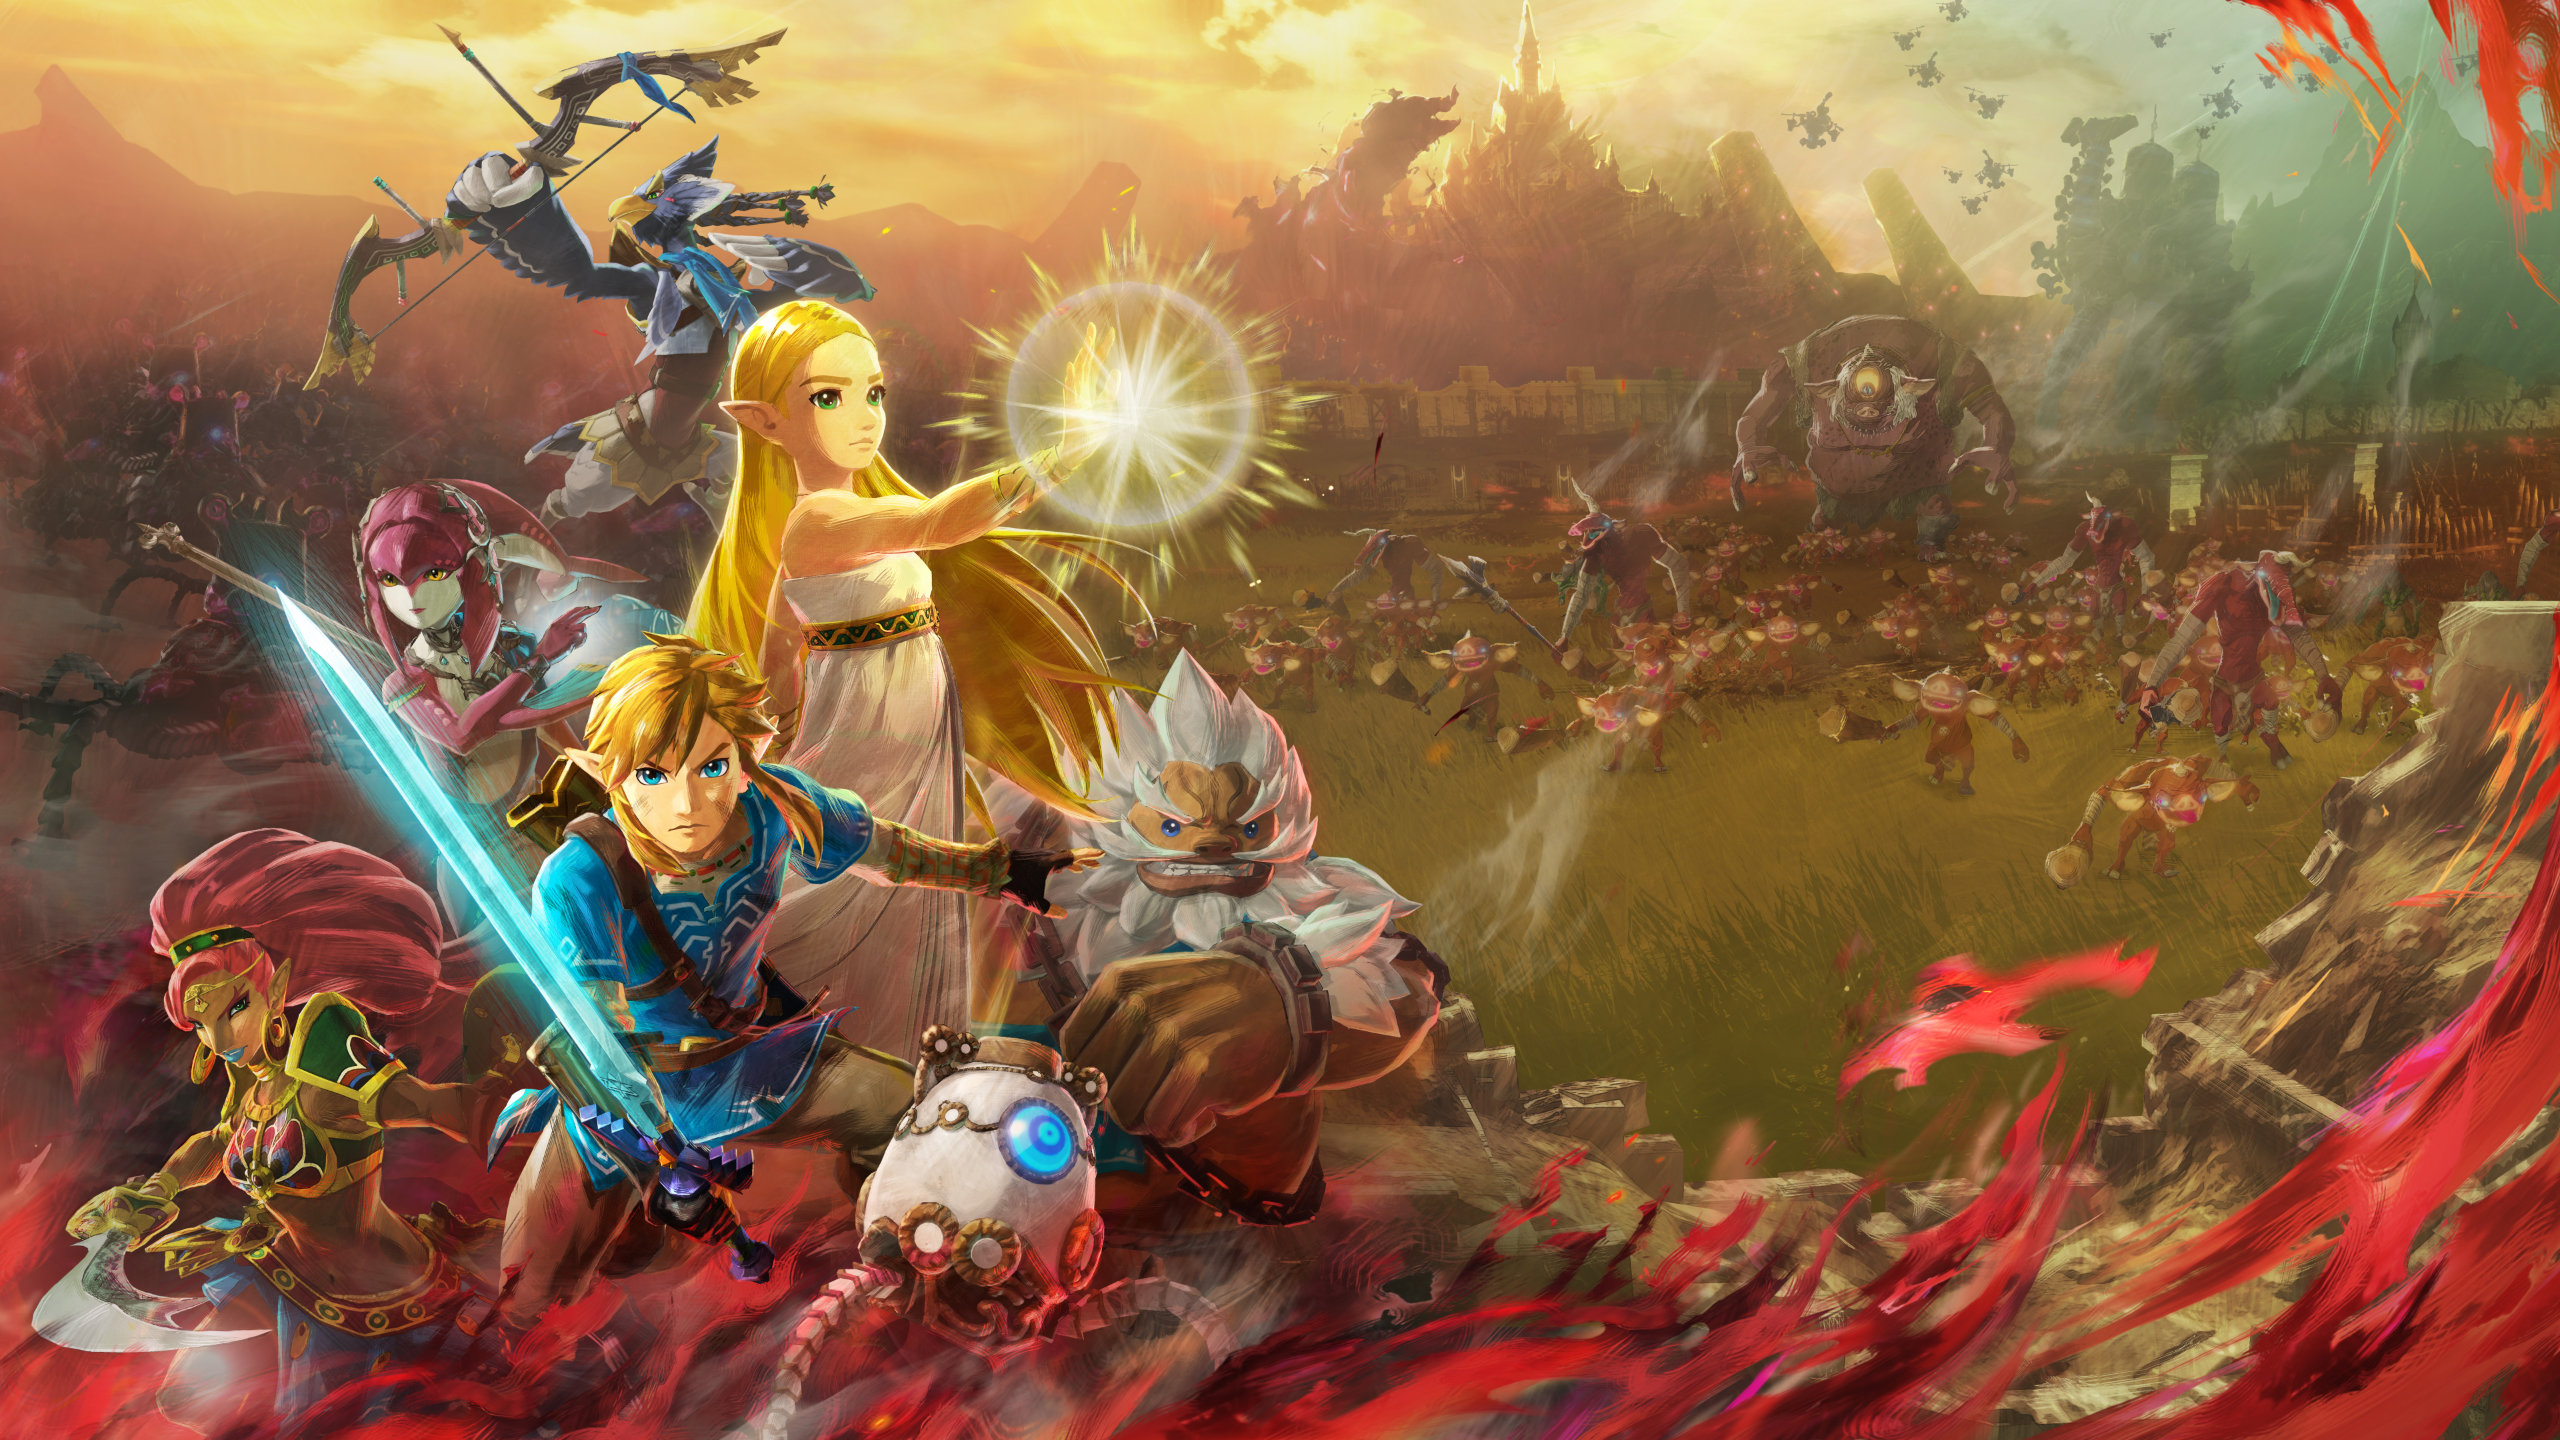 Hyrule Warriors: Age of Calamity cast in front of a battlefield full of monsters